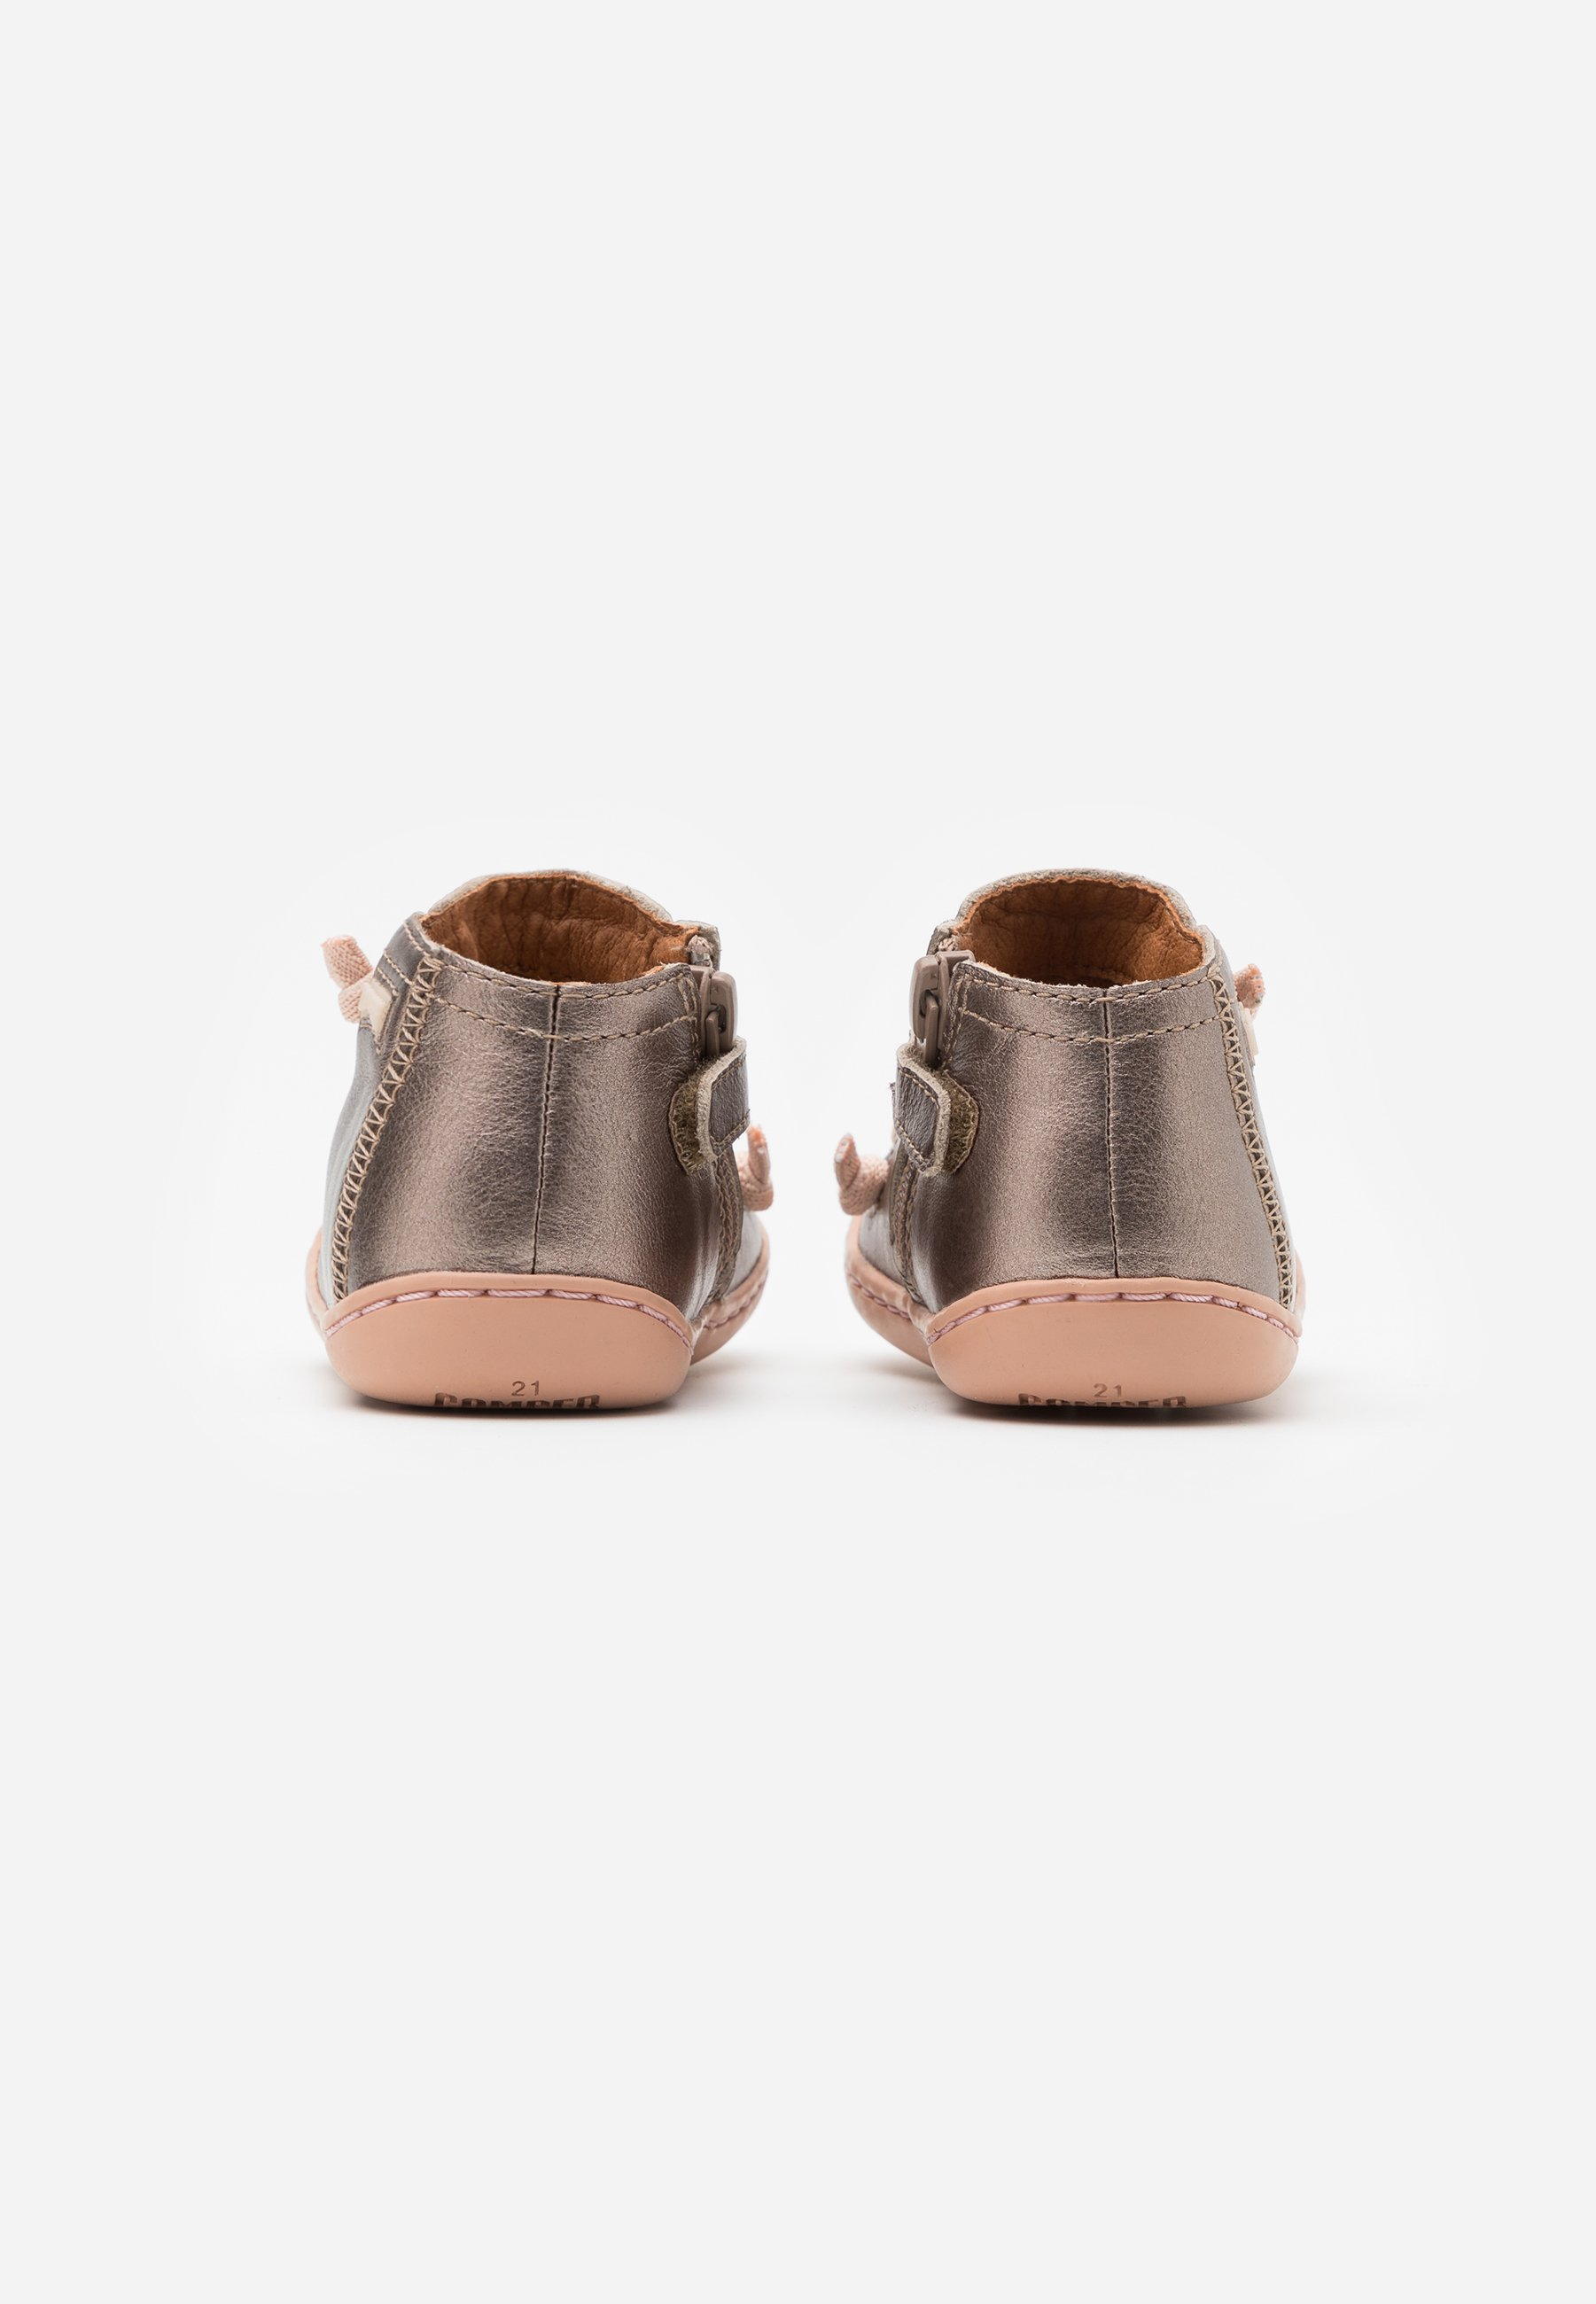 Latest Cheapest Camper PEU CAMI - Baby shoes - light beige | kids shoes 2020 mGyqH